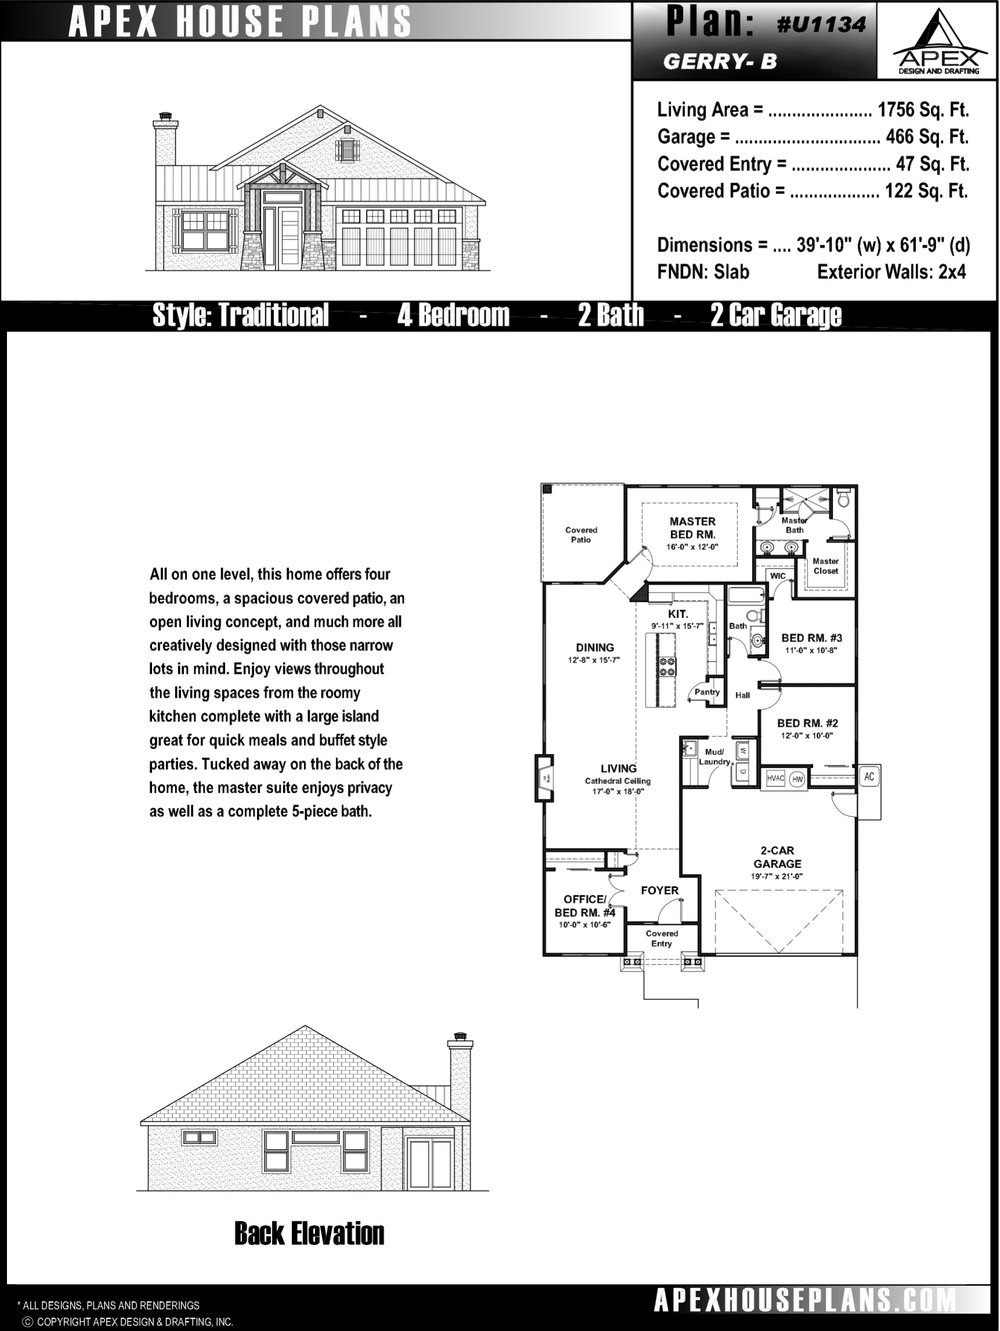 Floor Plans Courtesy Of Apex Design And Drafting.